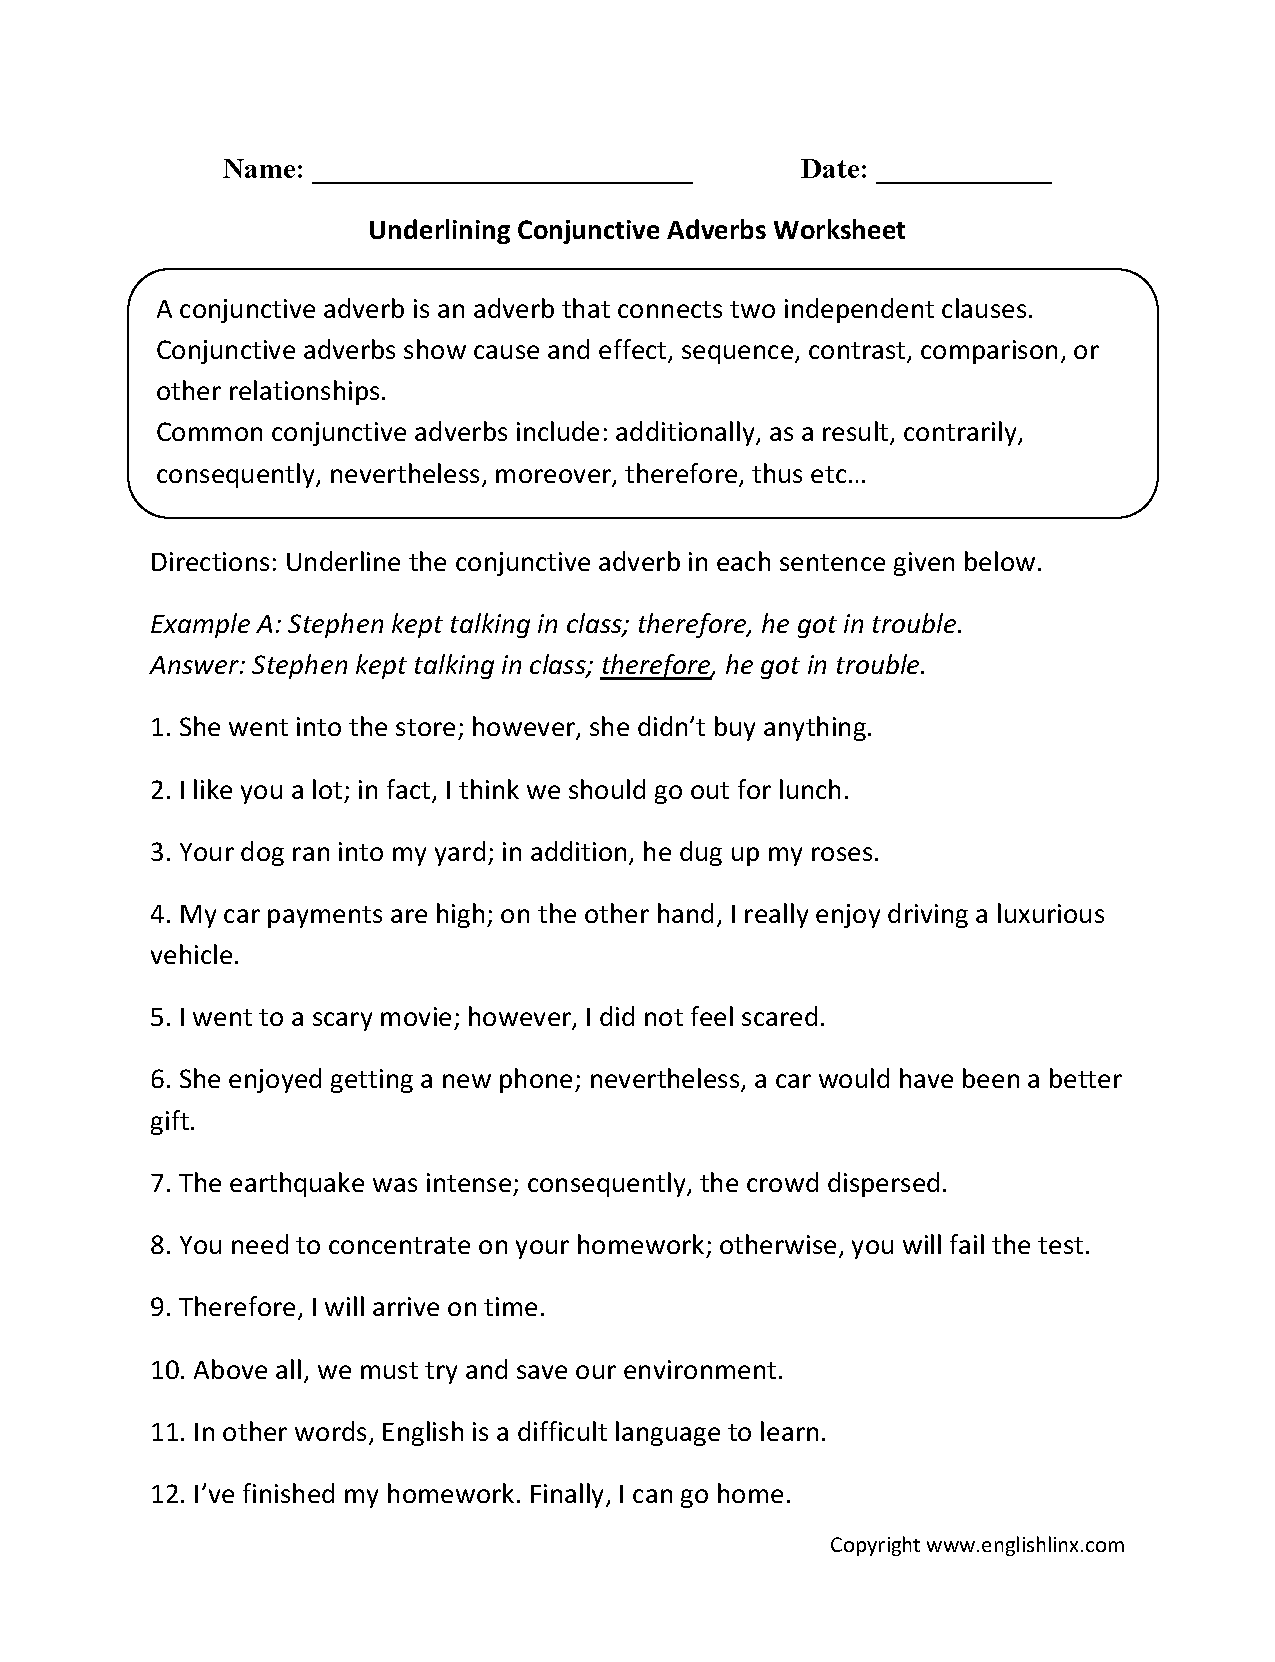 Proatmealus  Marvelous Englishlinxcom  Conjunctions Worksheets With Interesting Worksheet With Cool The Great Gatsby Character Worksheet Answers Also Nonfiction Text Features Worksheet In Addition Th Grade Reading Worksheets And Maze Worksheets As Well As Volcano Worksheets Additionally Creating The Constitution Worksheet From Englishlinxcom With Proatmealus  Interesting Englishlinxcom  Conjunctions Worksheets With Cool Worksheet And Marvelous The Great Gatsby Character Worksheet Answers Also Nonfiction Text Features Worksheet In Addition Th Grade Reading Worksheets From Englishlinxcom